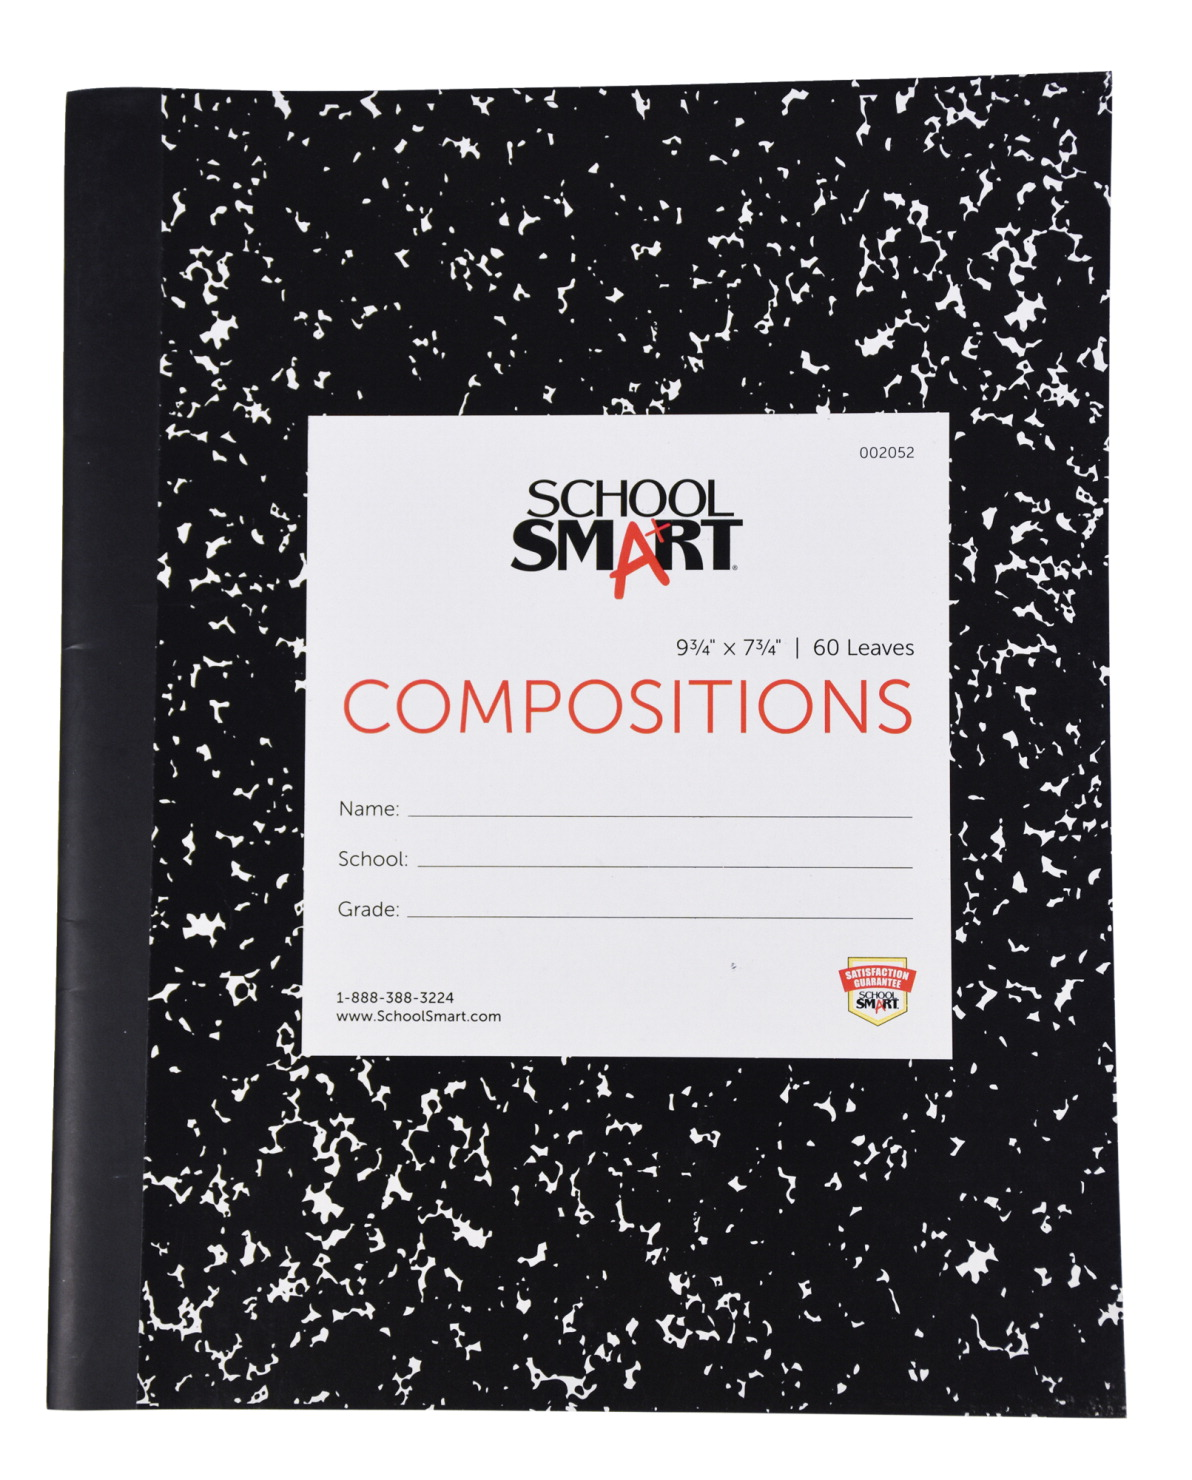 School Smart Flexible Cover Ruled Composition Book, 60 Sheets, 9-3/4 x 7-1/2 Inches